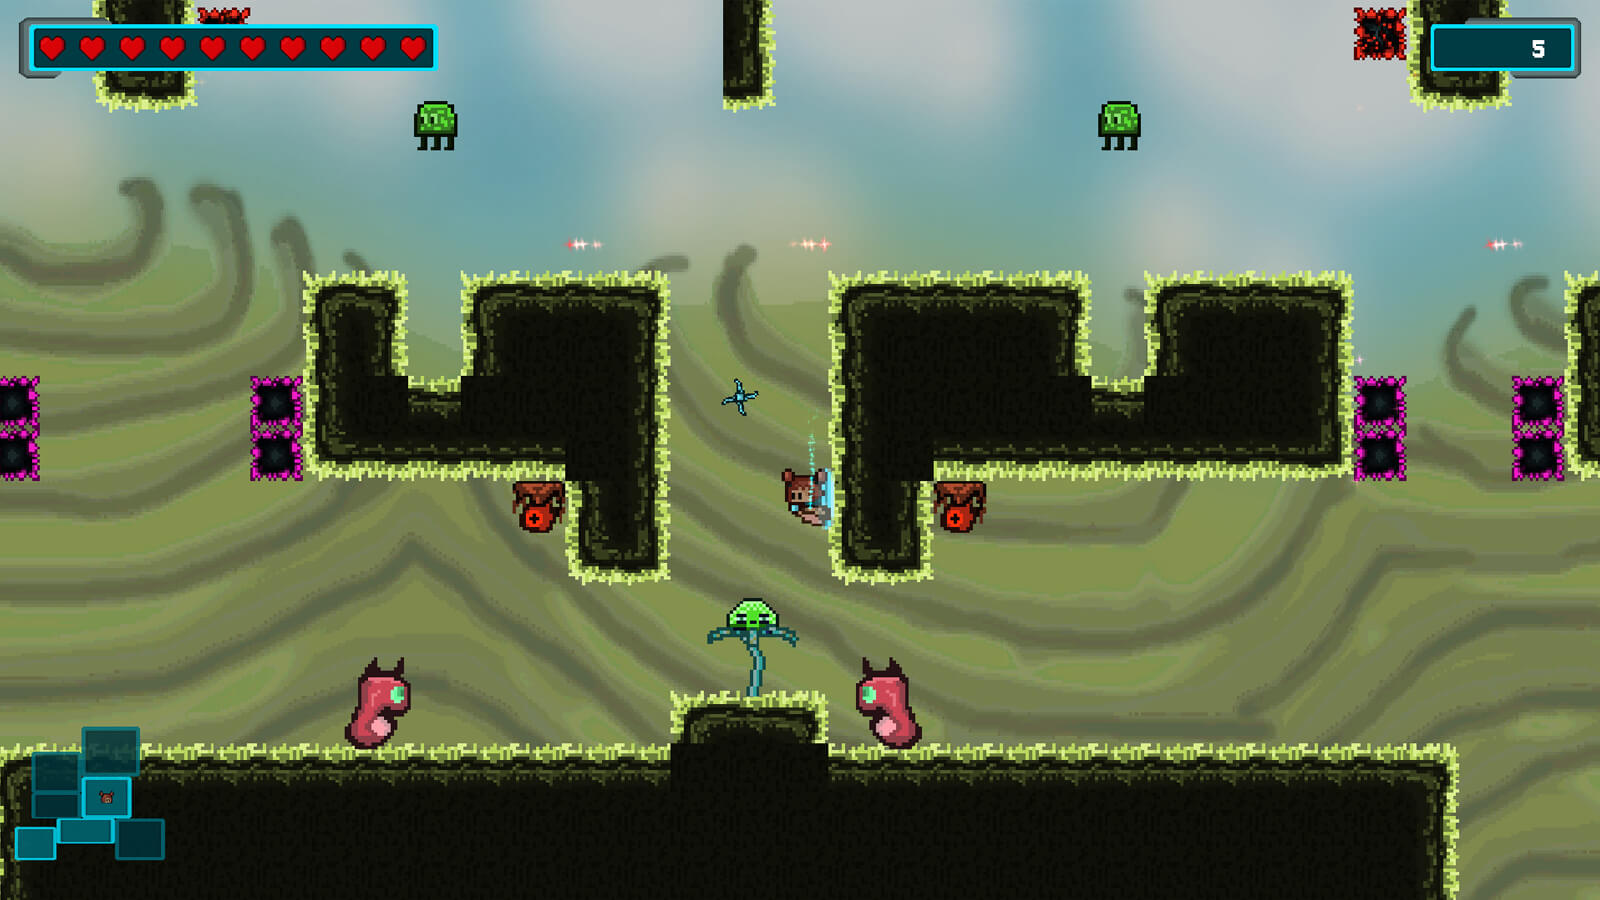 Mika wall jumps over a green plant-like creature as enemies surround her.